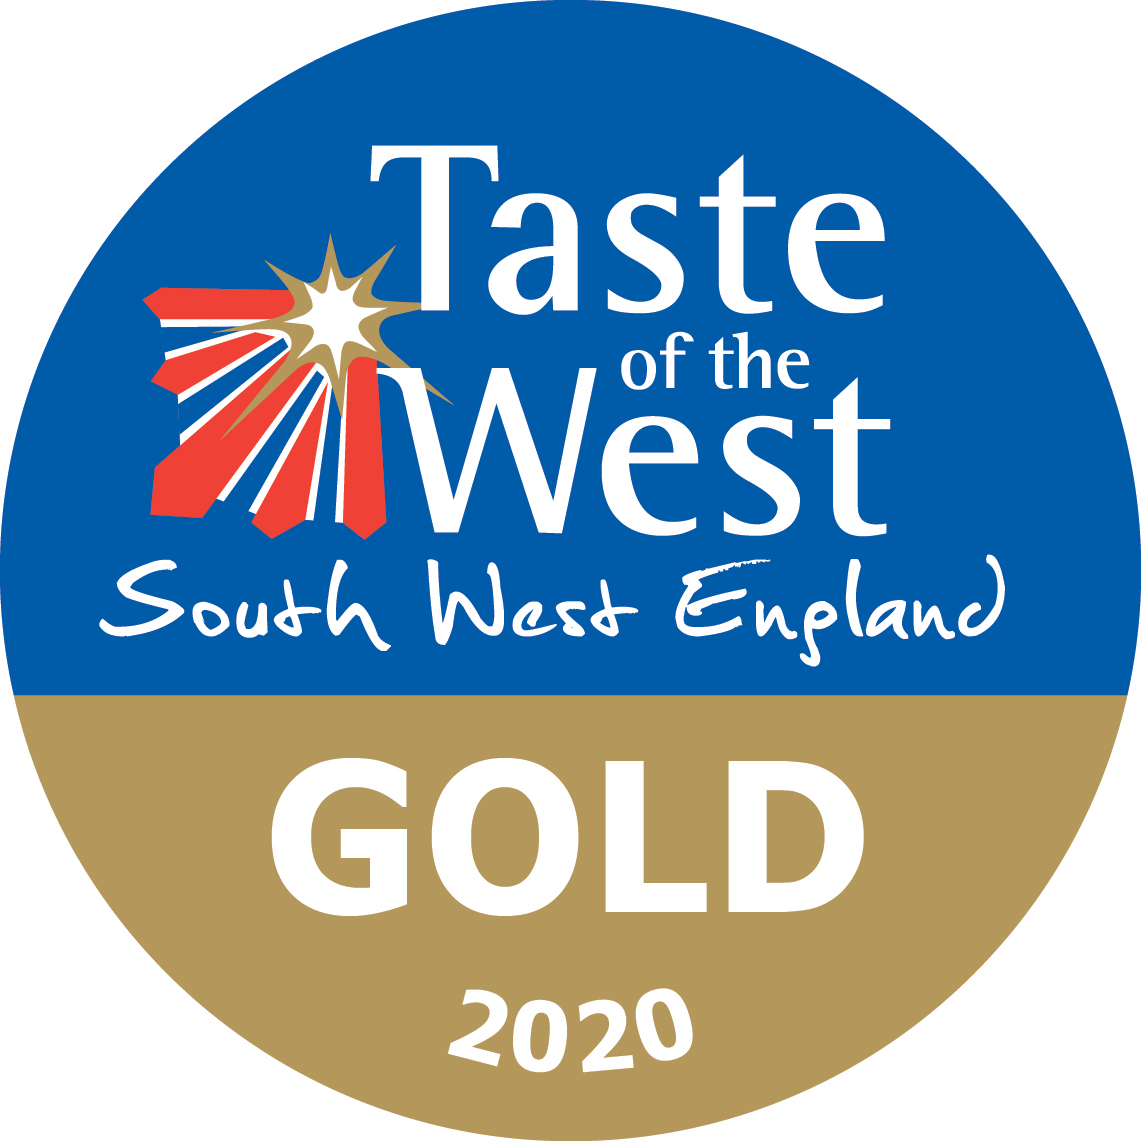 2020 Gold Taste of the West Award